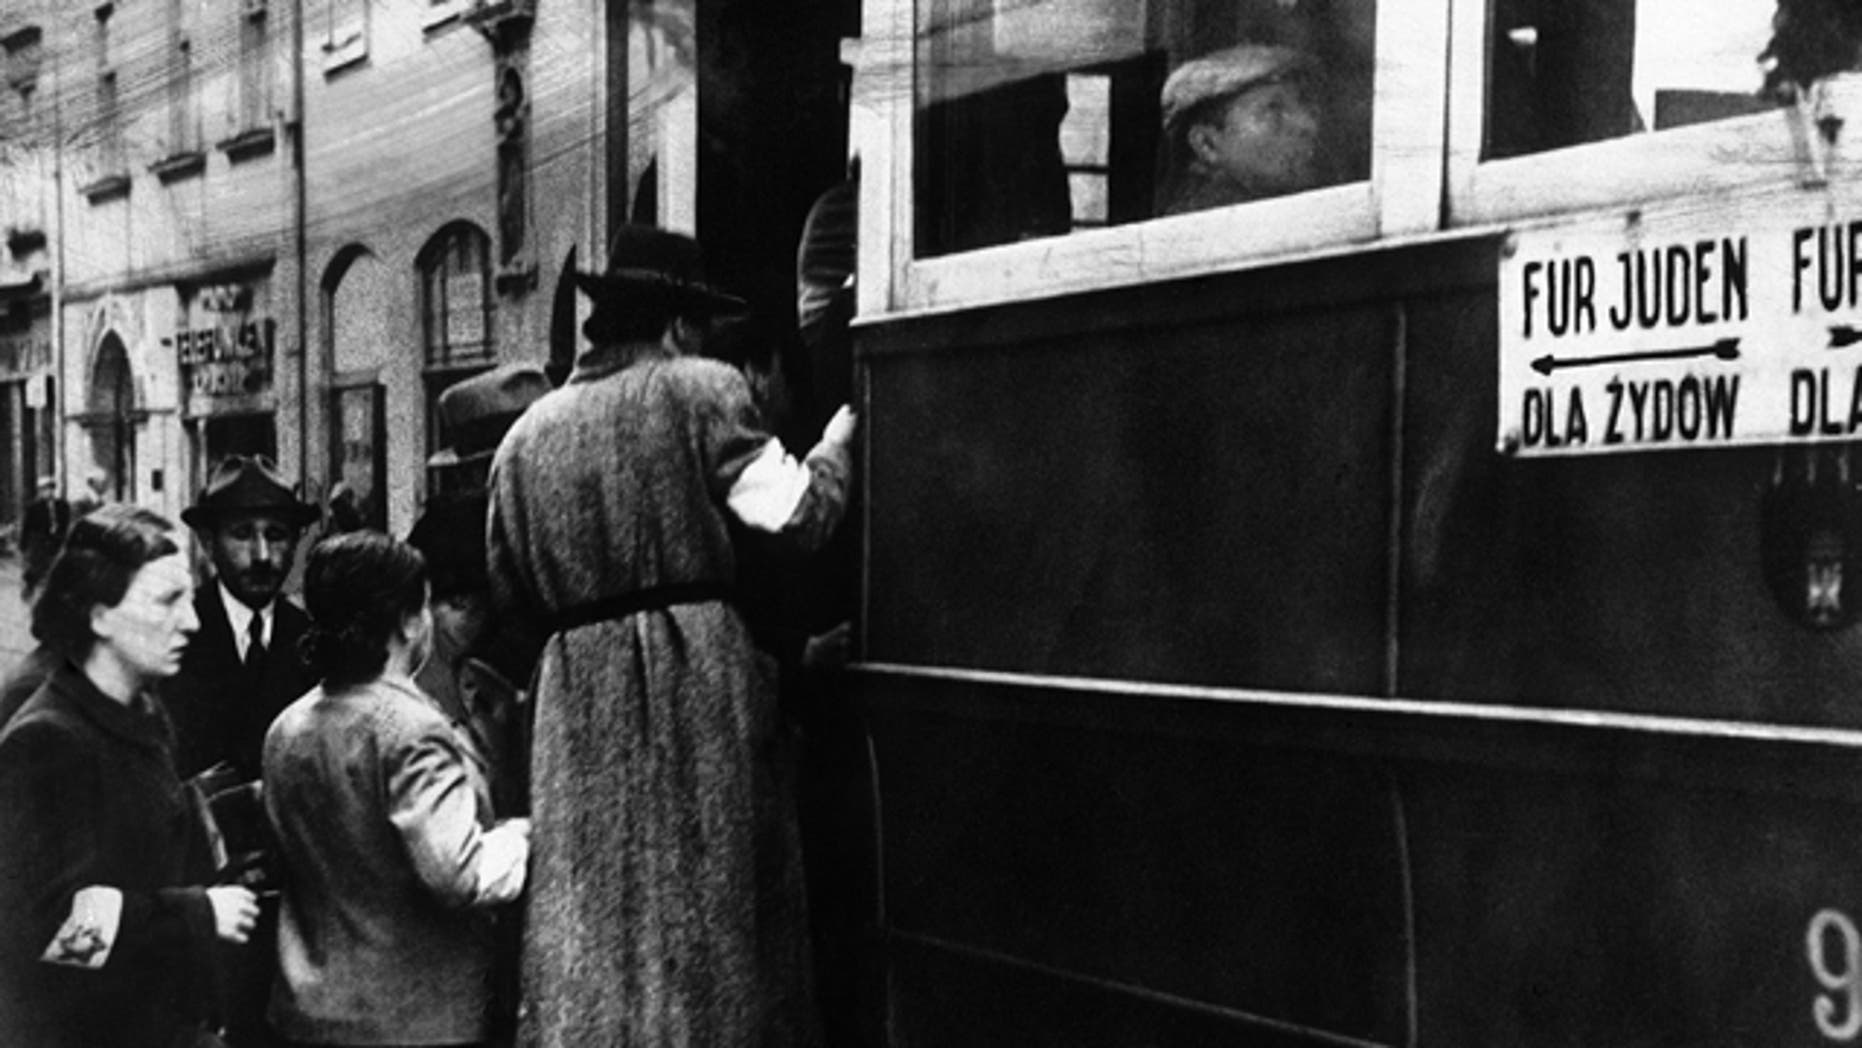 Feb. 17, 1941: FILE - This file photo shows a scene in the Warsaw Ghetto where Jews wearing white armlets bearing the Star of David board a tram marked with the words For Jews Only.